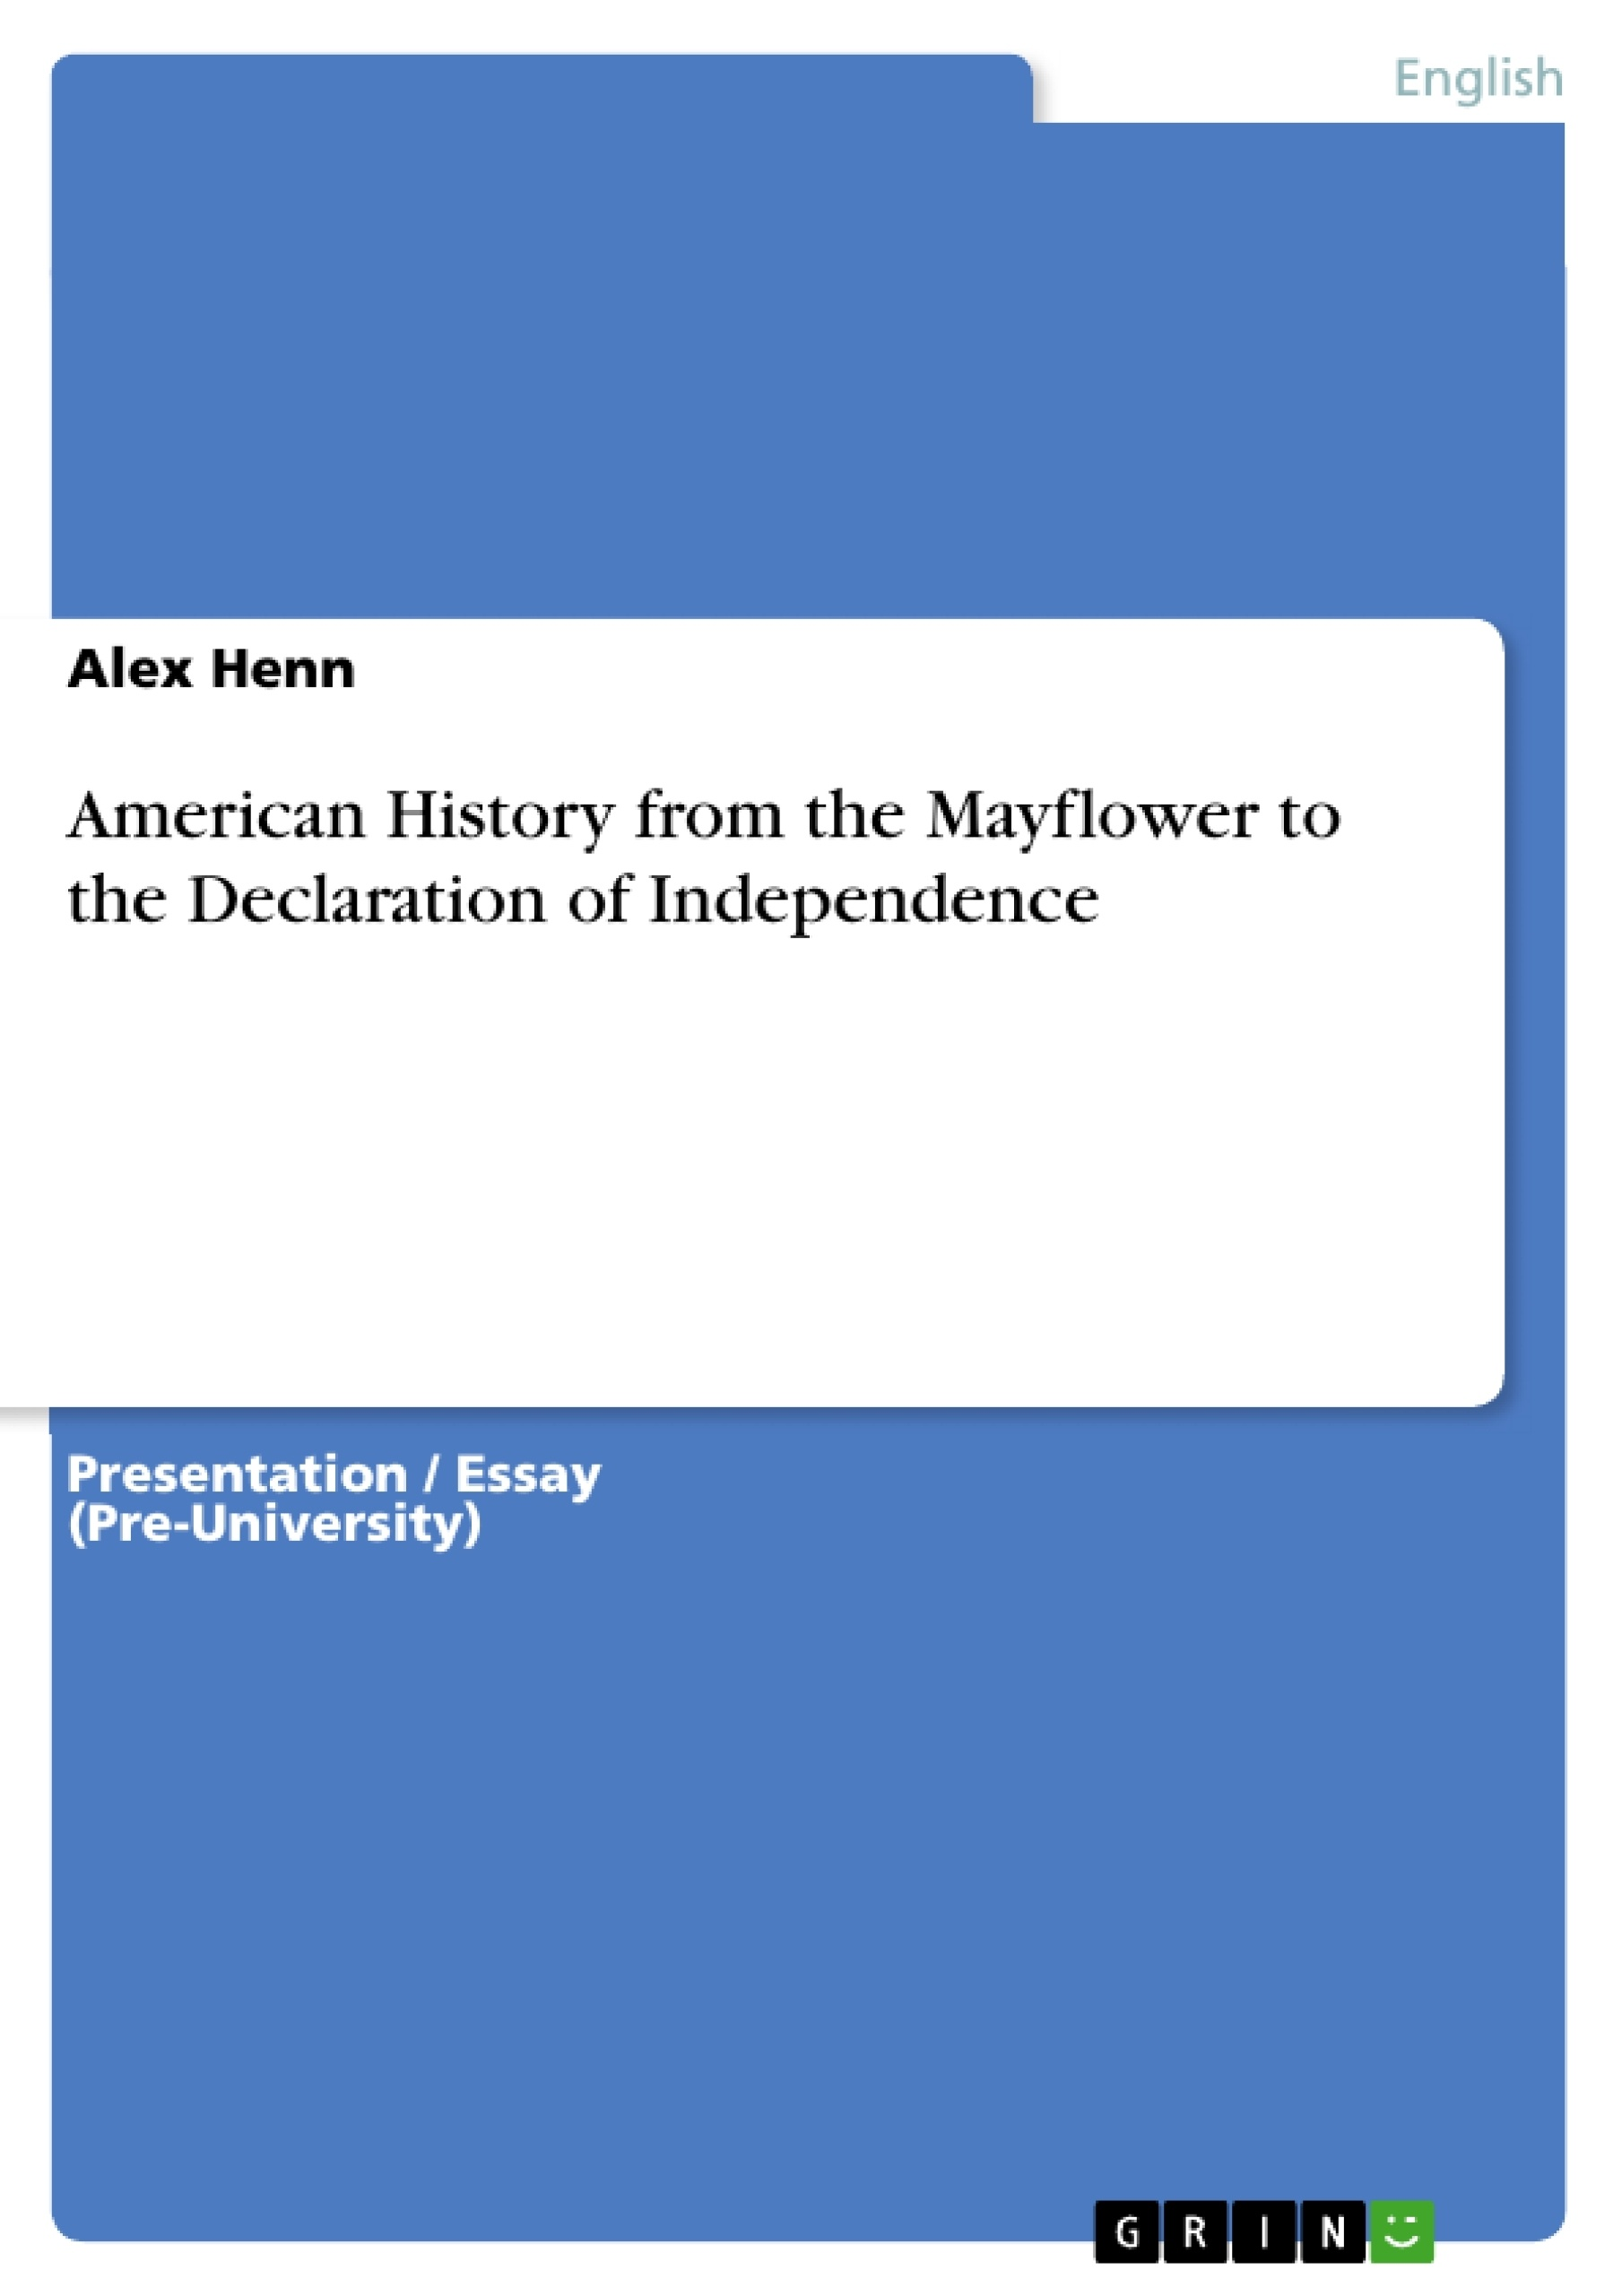 argumentative essay on declaration of independence